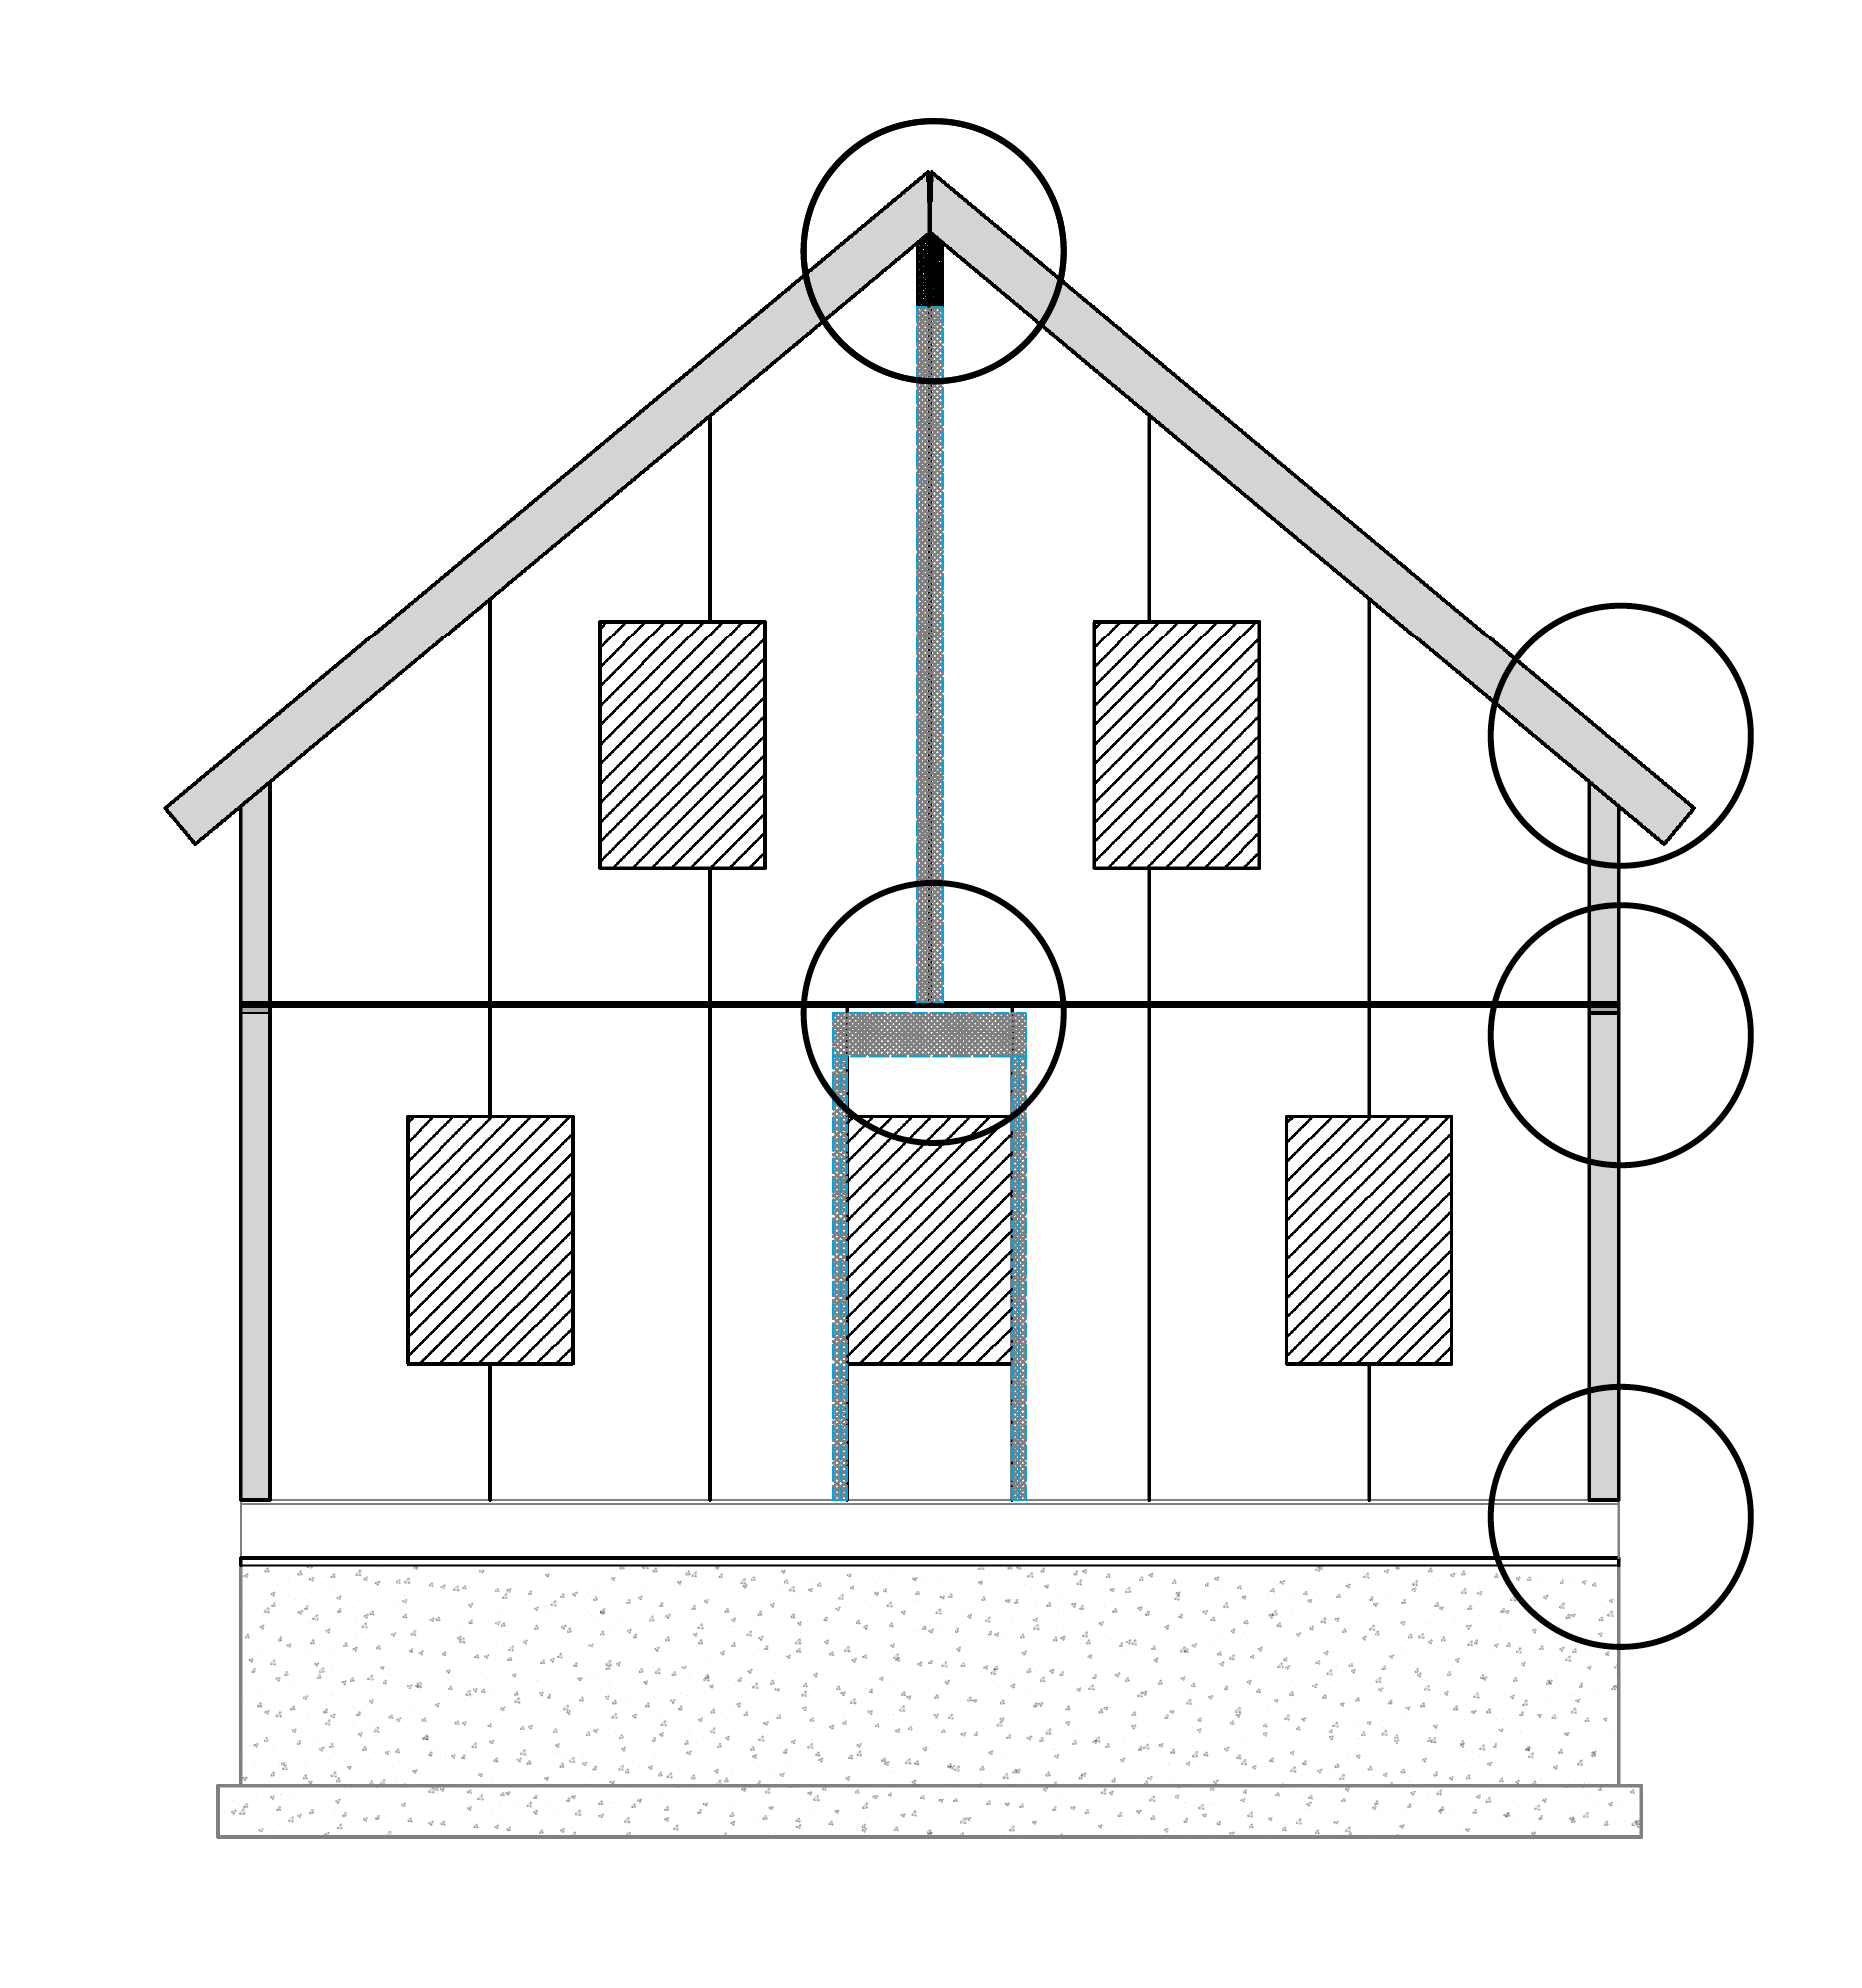 FOARD-Panel-SIP-Gable-End-with-circles.png